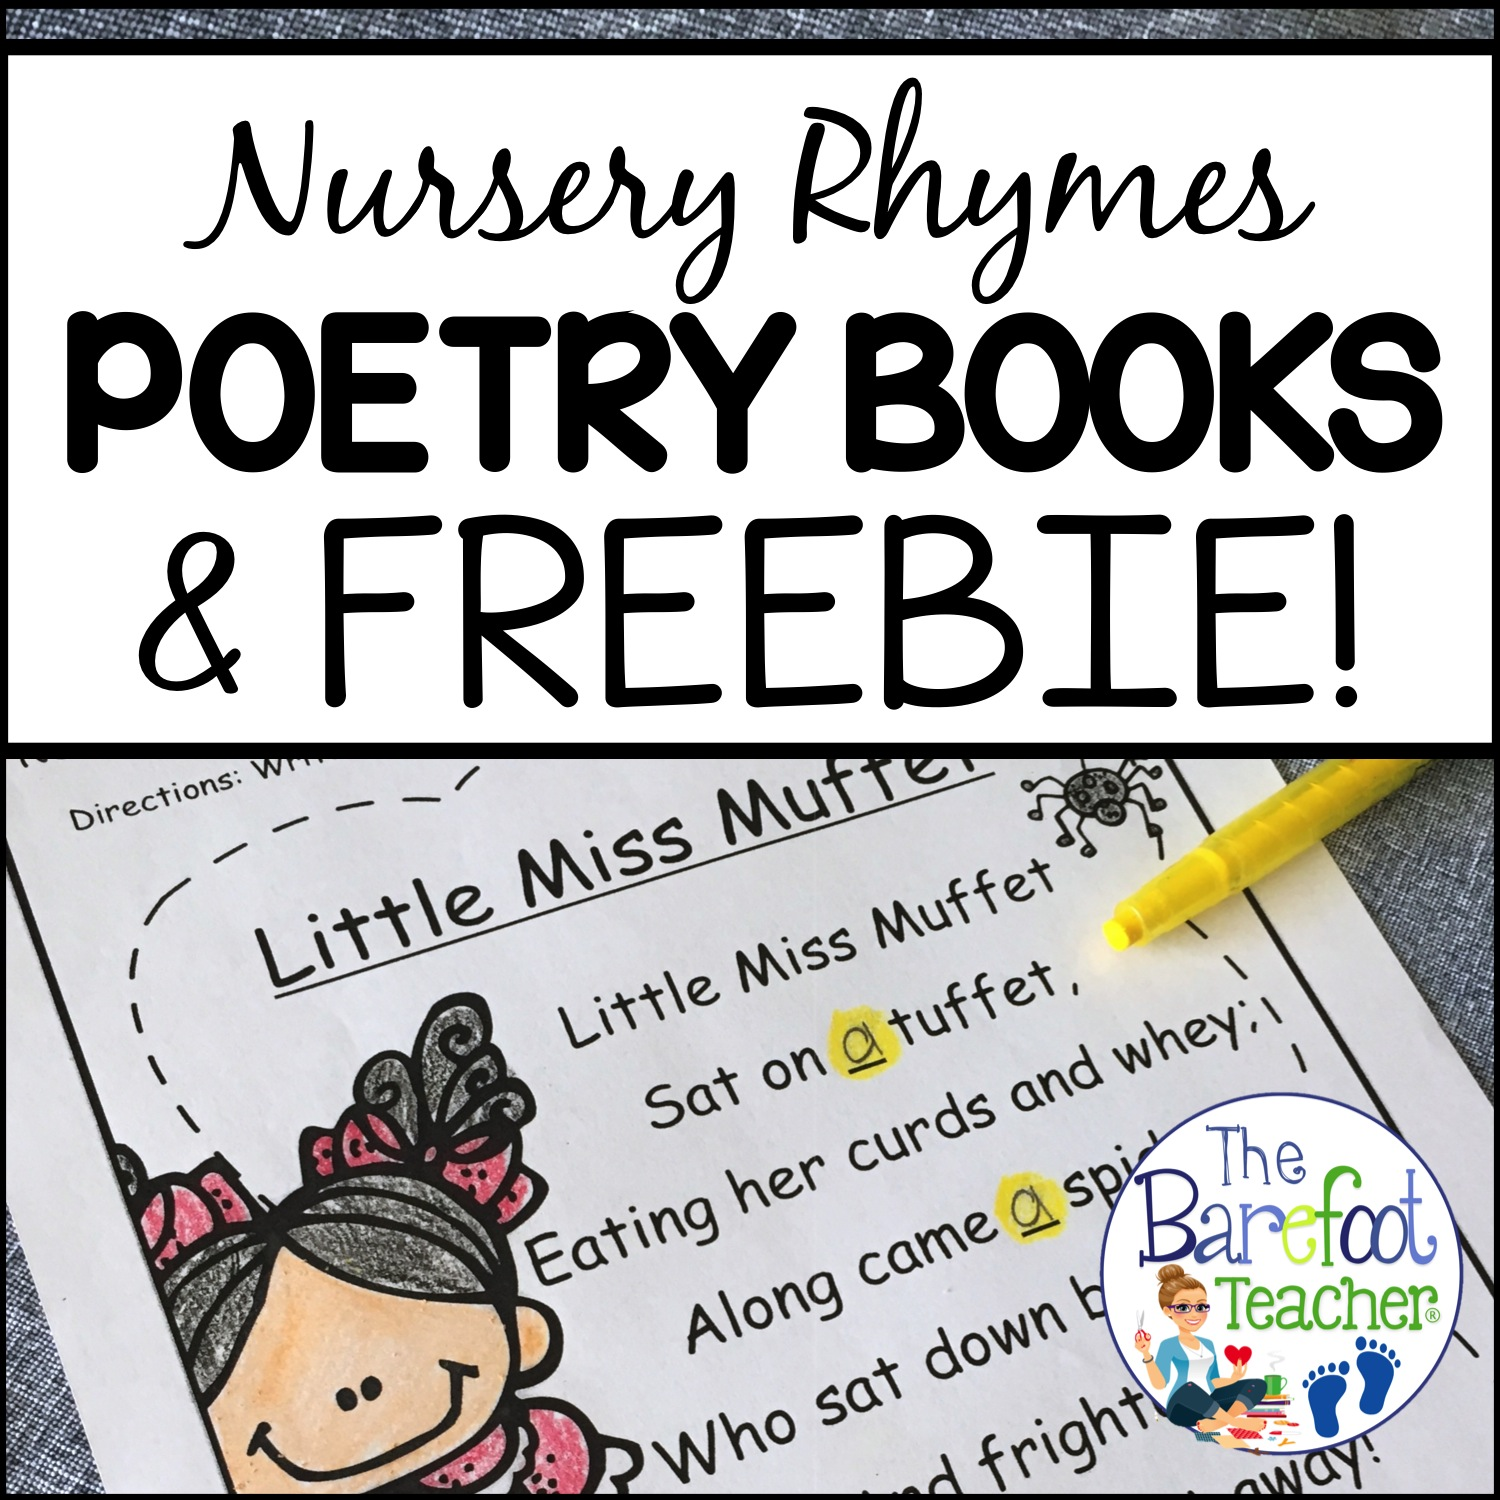 This Free Nursery Rhymes Poetry Book Printable Will Fit Right In With The Other Activities And